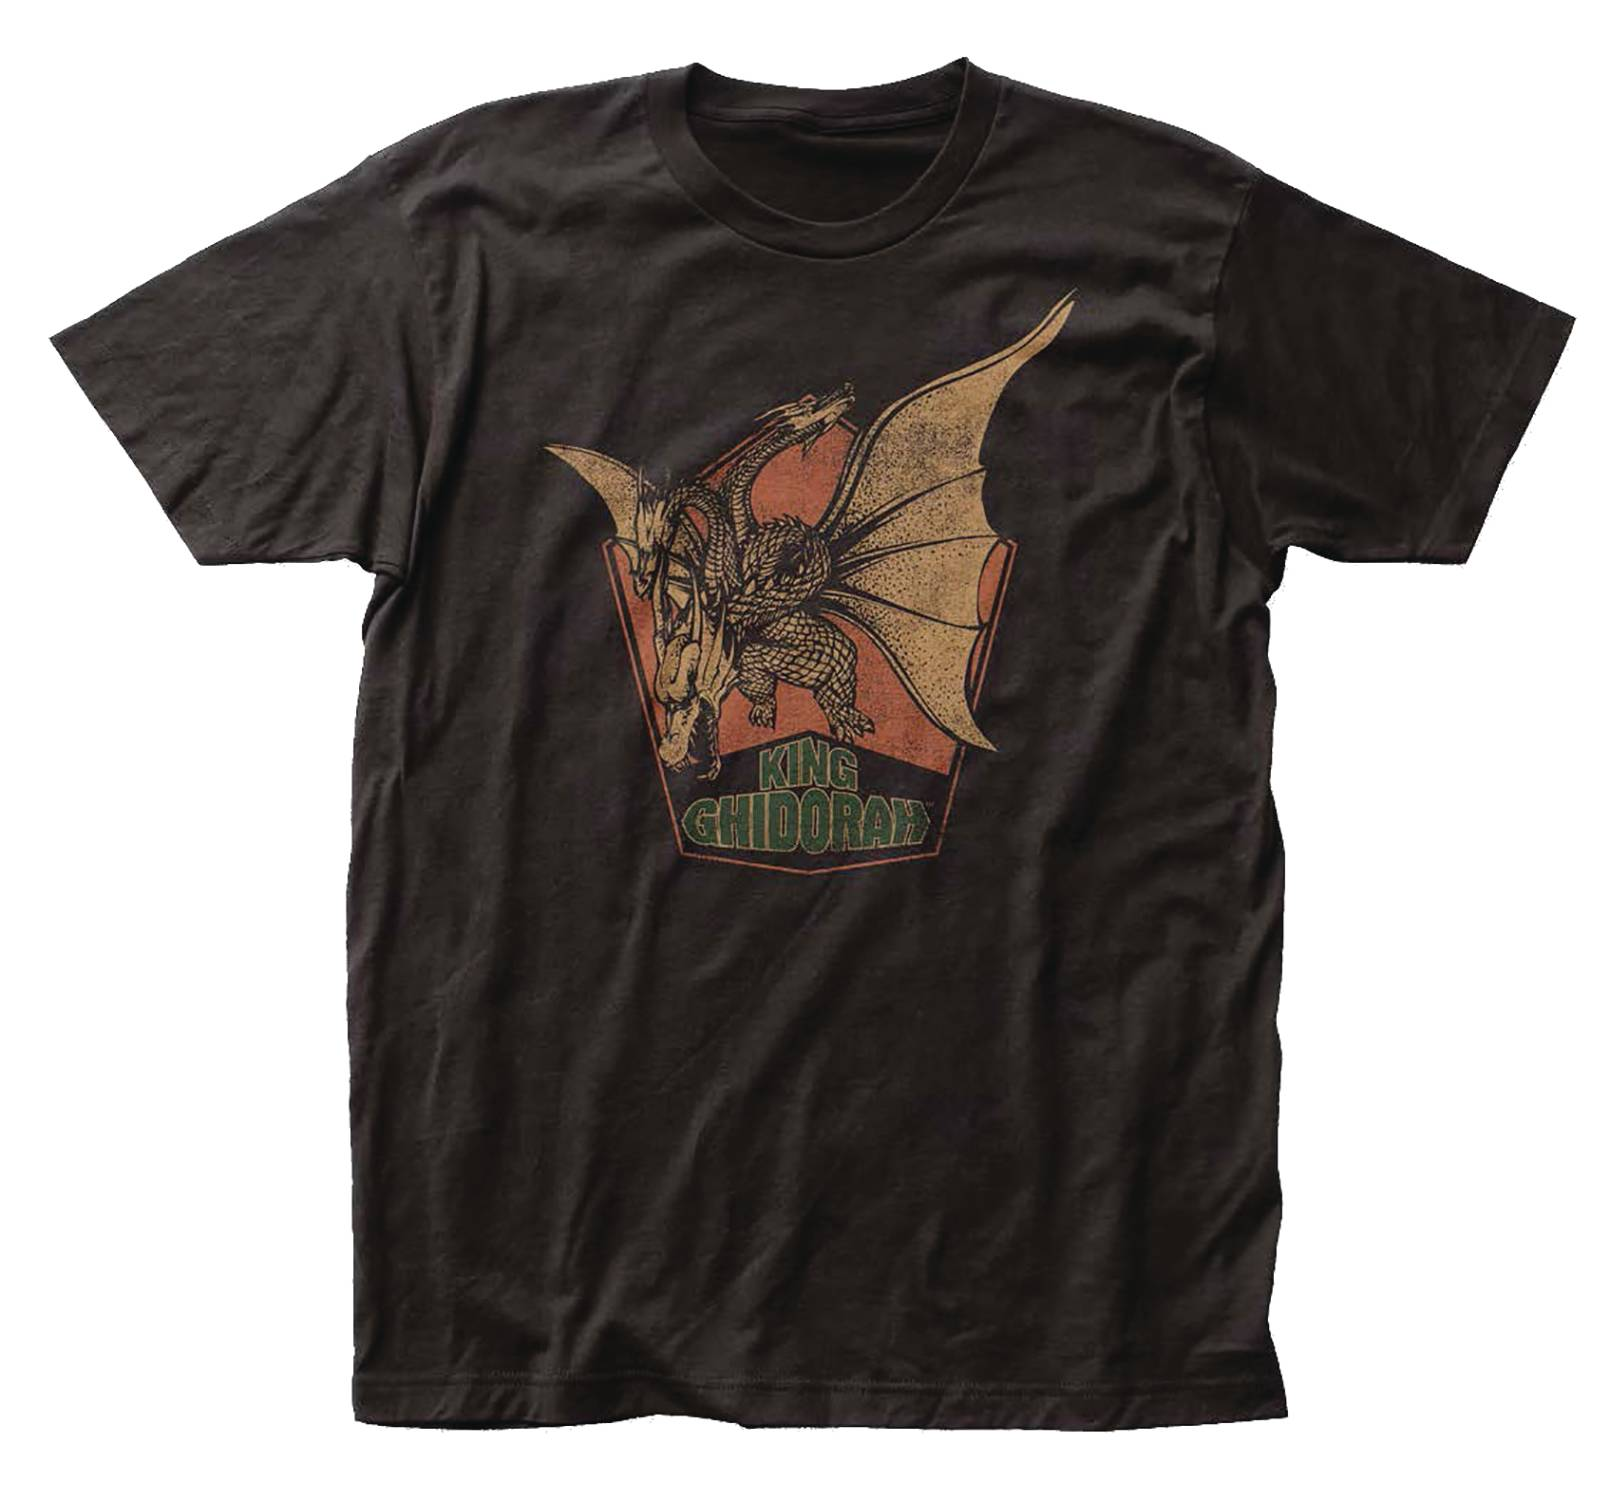 GODZILLA KING GHIDORAH PX FITTED T/S MED